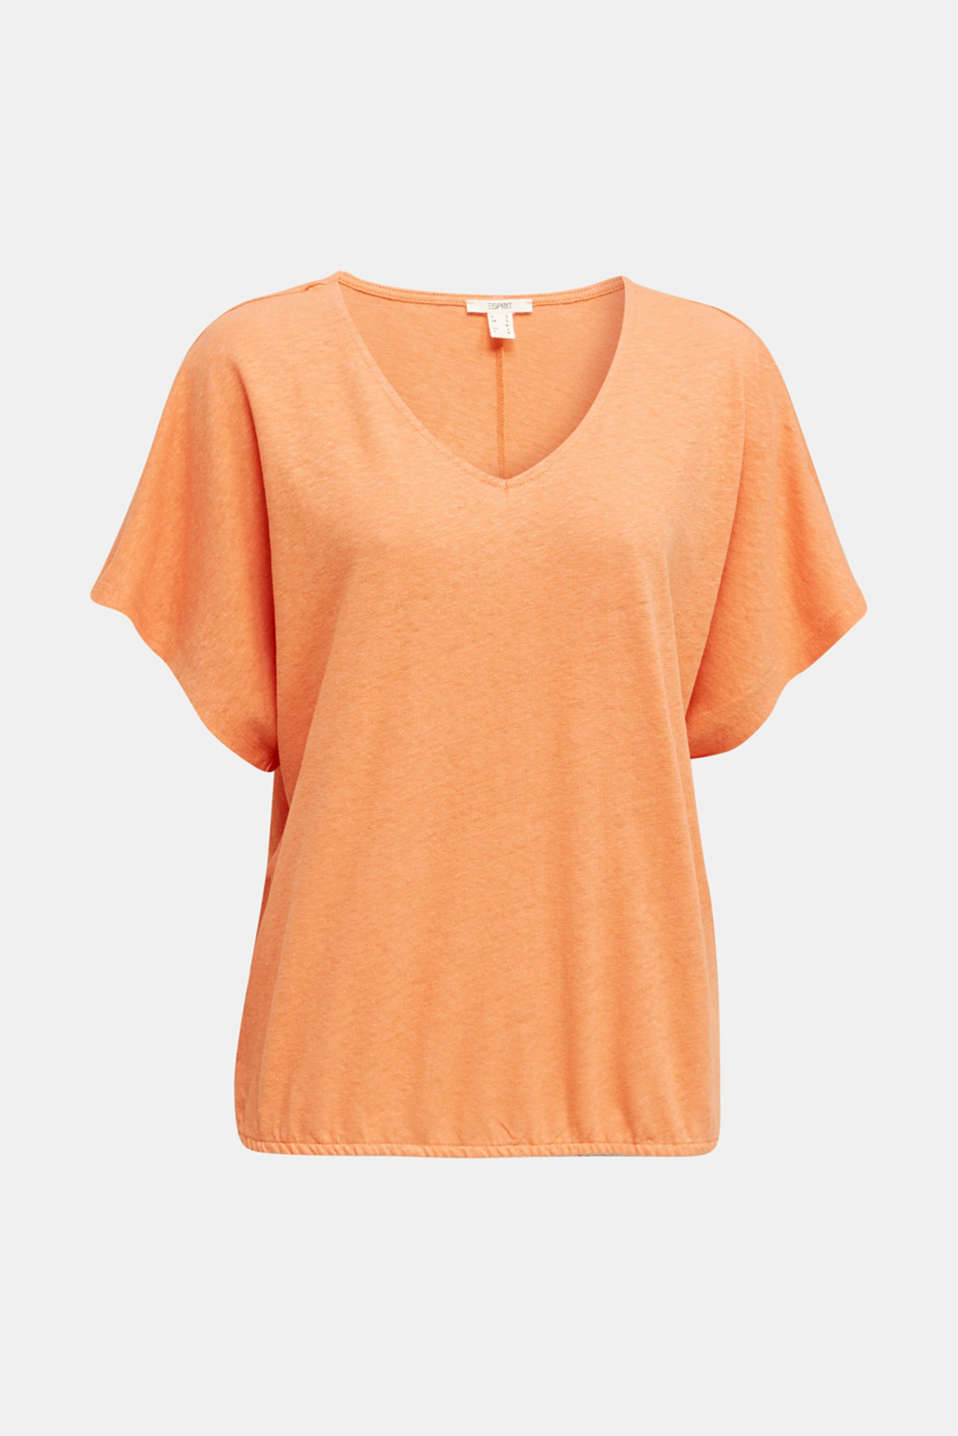 Blended linen top with an elasticated waistband, RUST ORANGE, detail image number 4